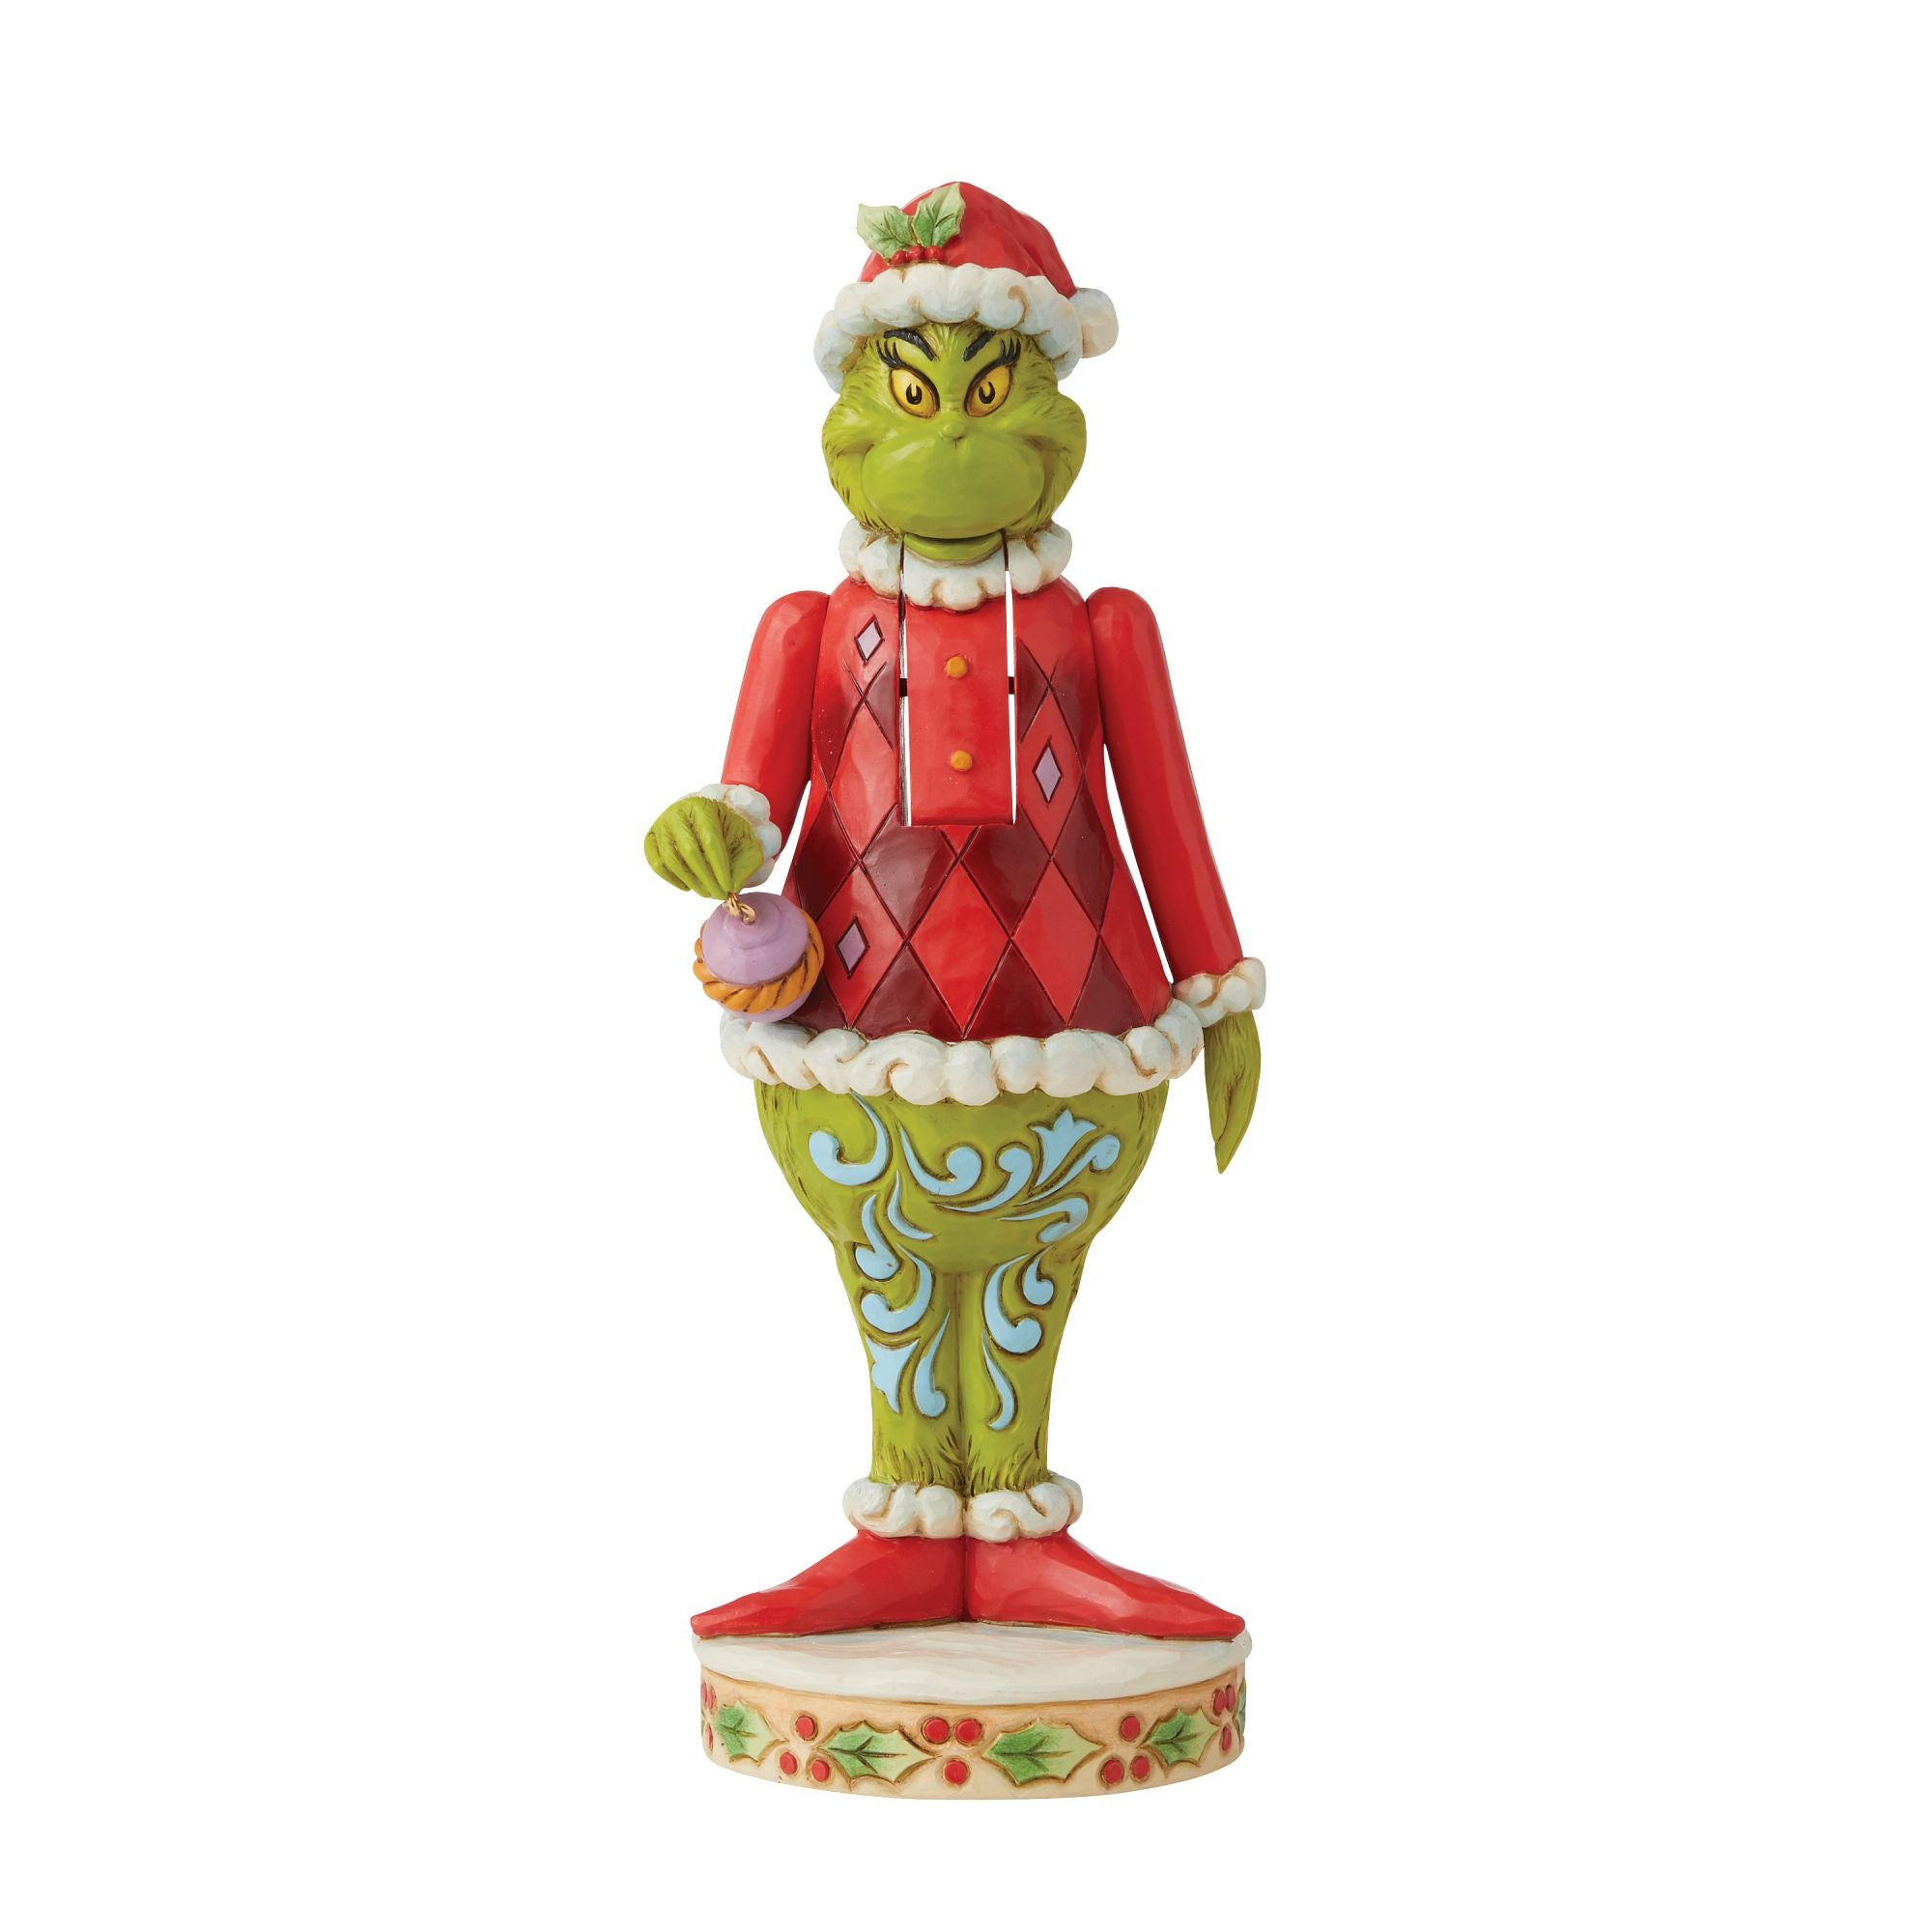 Grinch Nutcracker Figurine